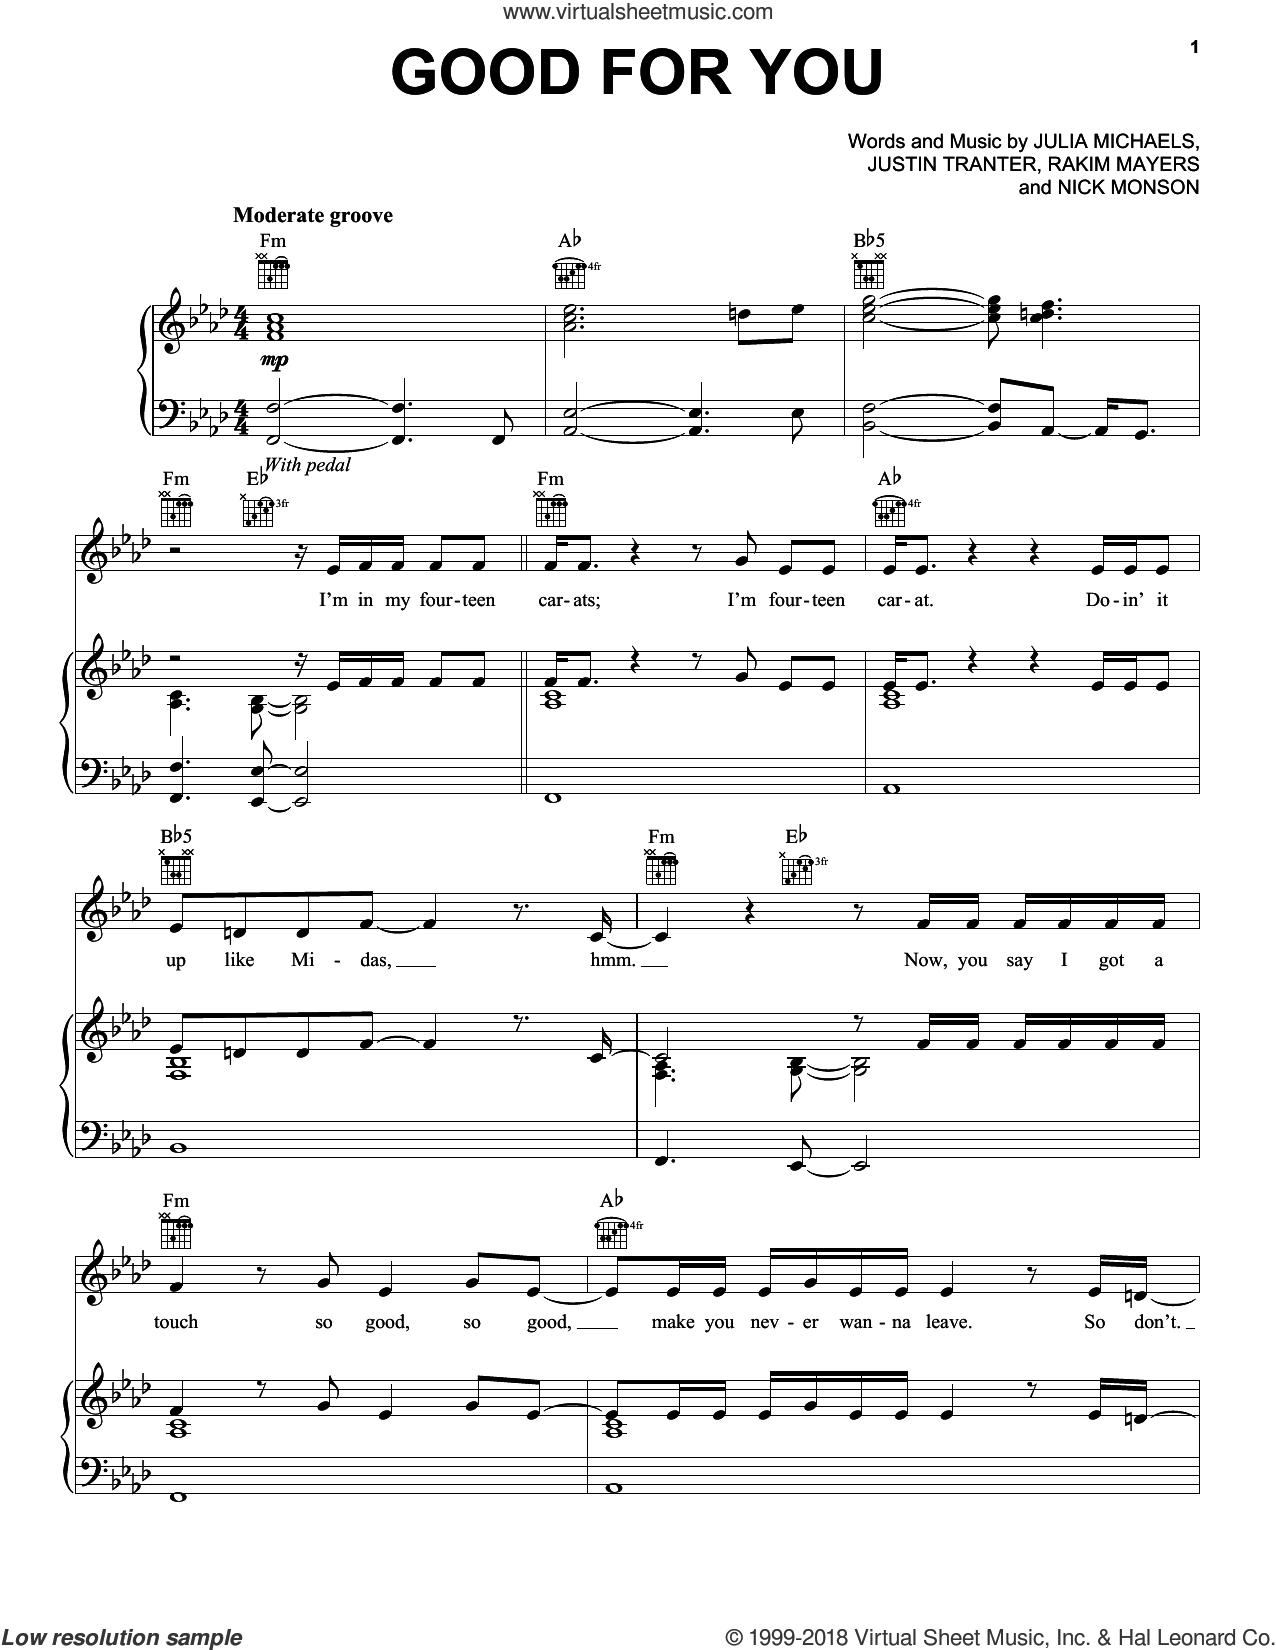 Good For You sheet music for voice, piano or guitar by Selena Gomez, Selena Gomez feat. A$AP Rocky, Julia Michaels, Justin Tranter, Nick Monson and Rakim Mayers, intermediate